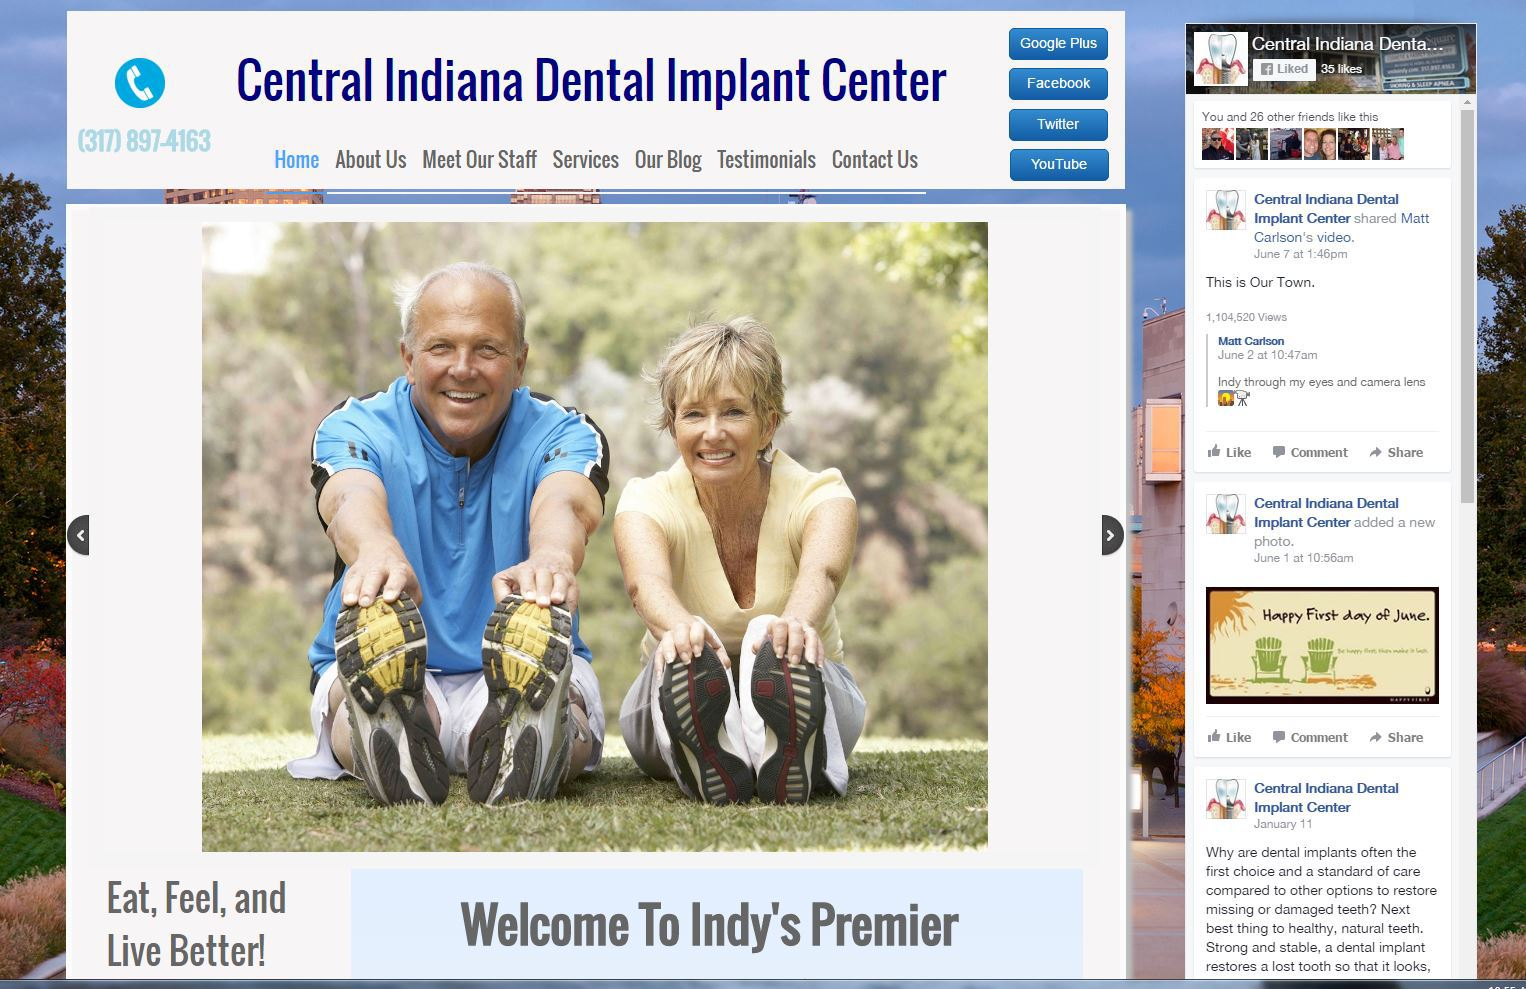 Central Indiana Dental Implant Center Website